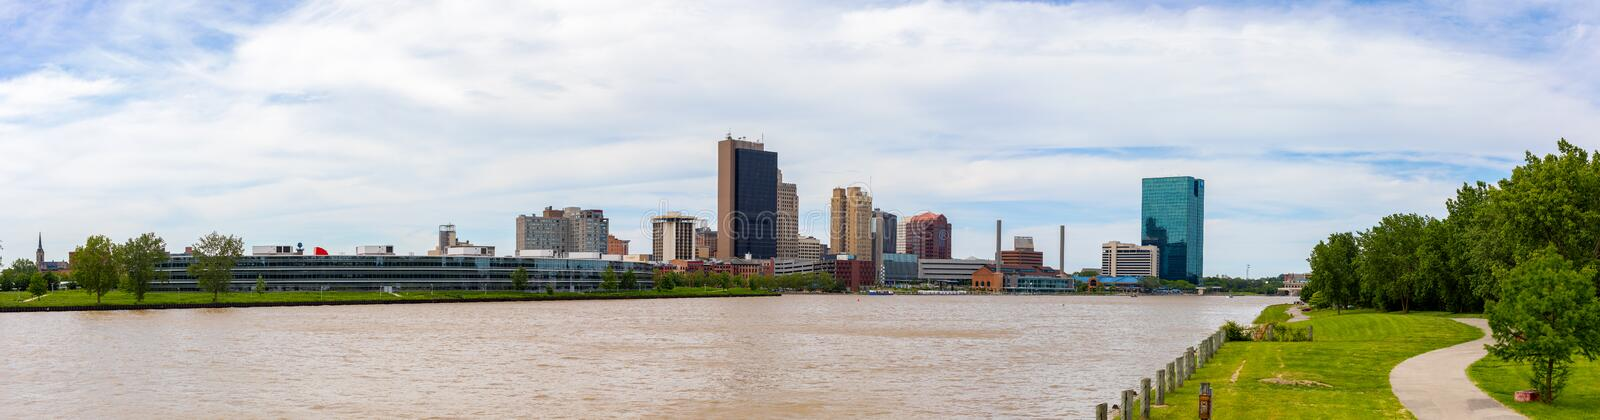 Toledo Skyline. Toledo, city located in the state of Ohio, United States, as seen from the International Park, across the Maumee River royalty free stock images